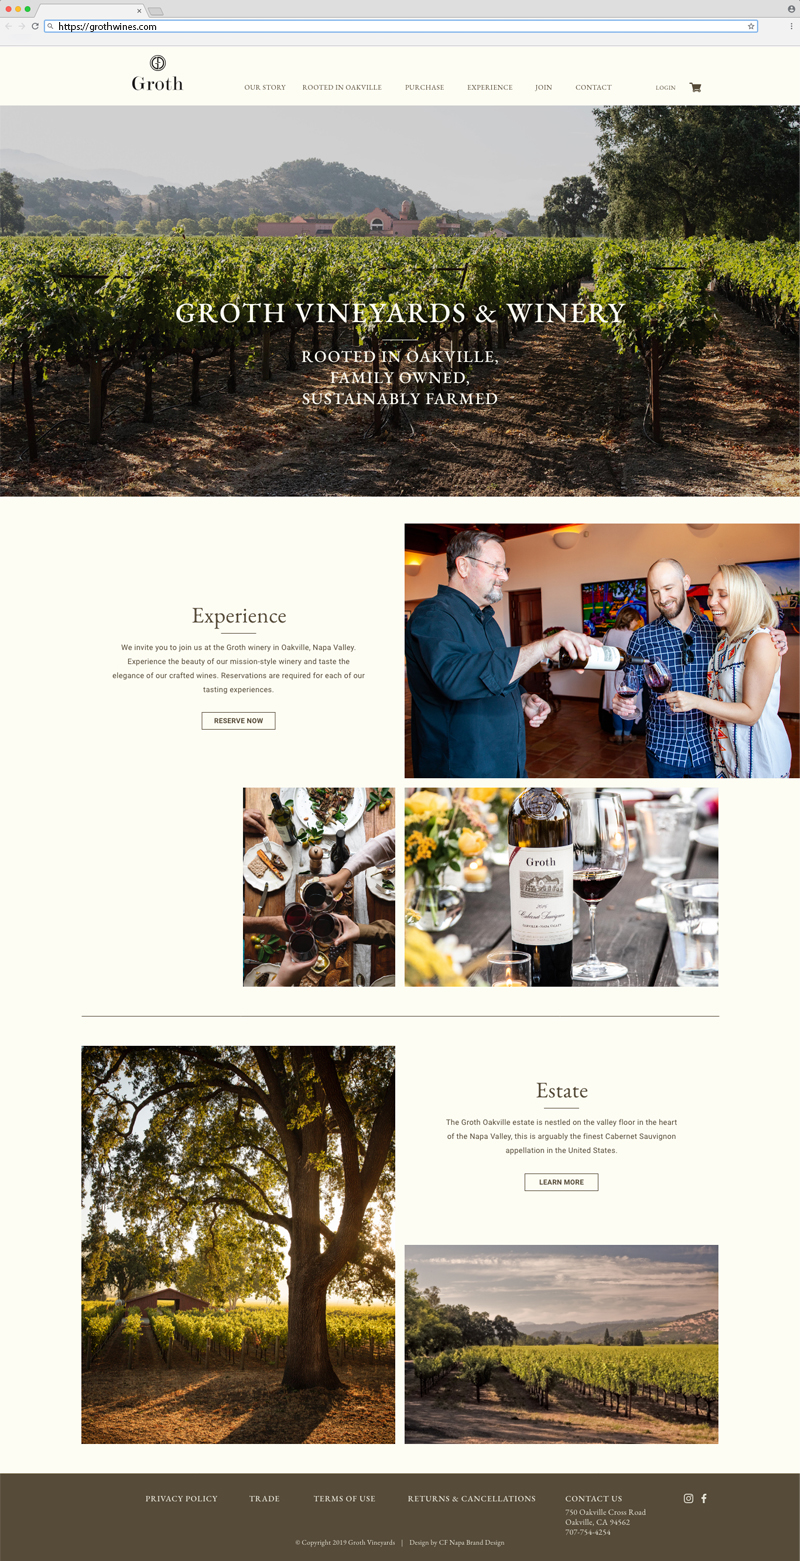 Groth Vineyards & Winery Homepage Website Design